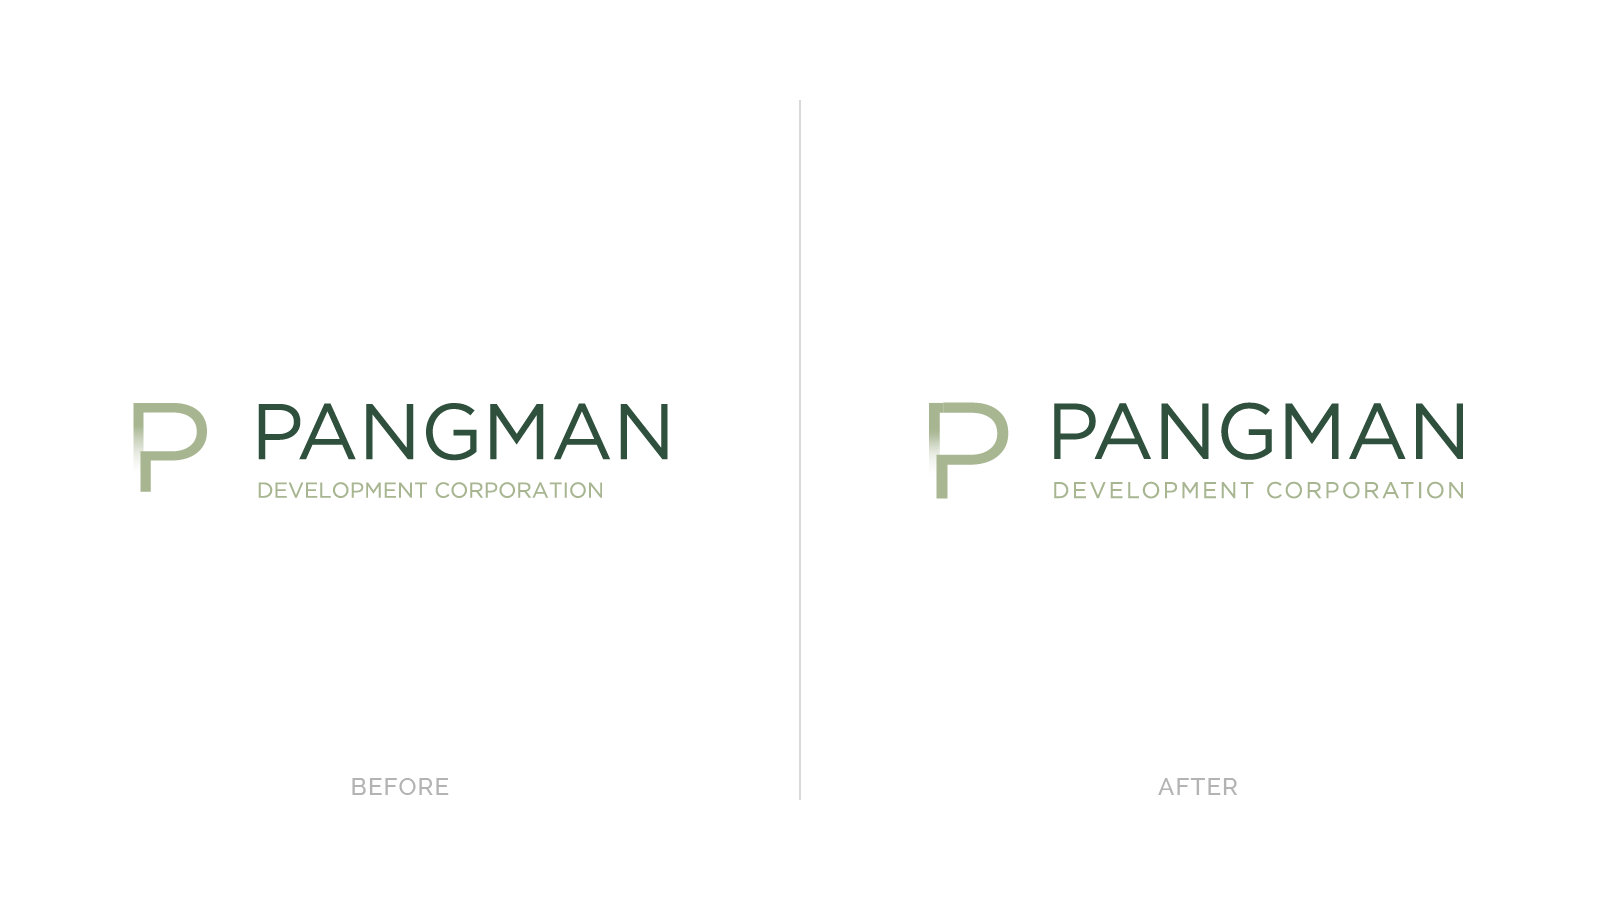 Pangman logos before and after